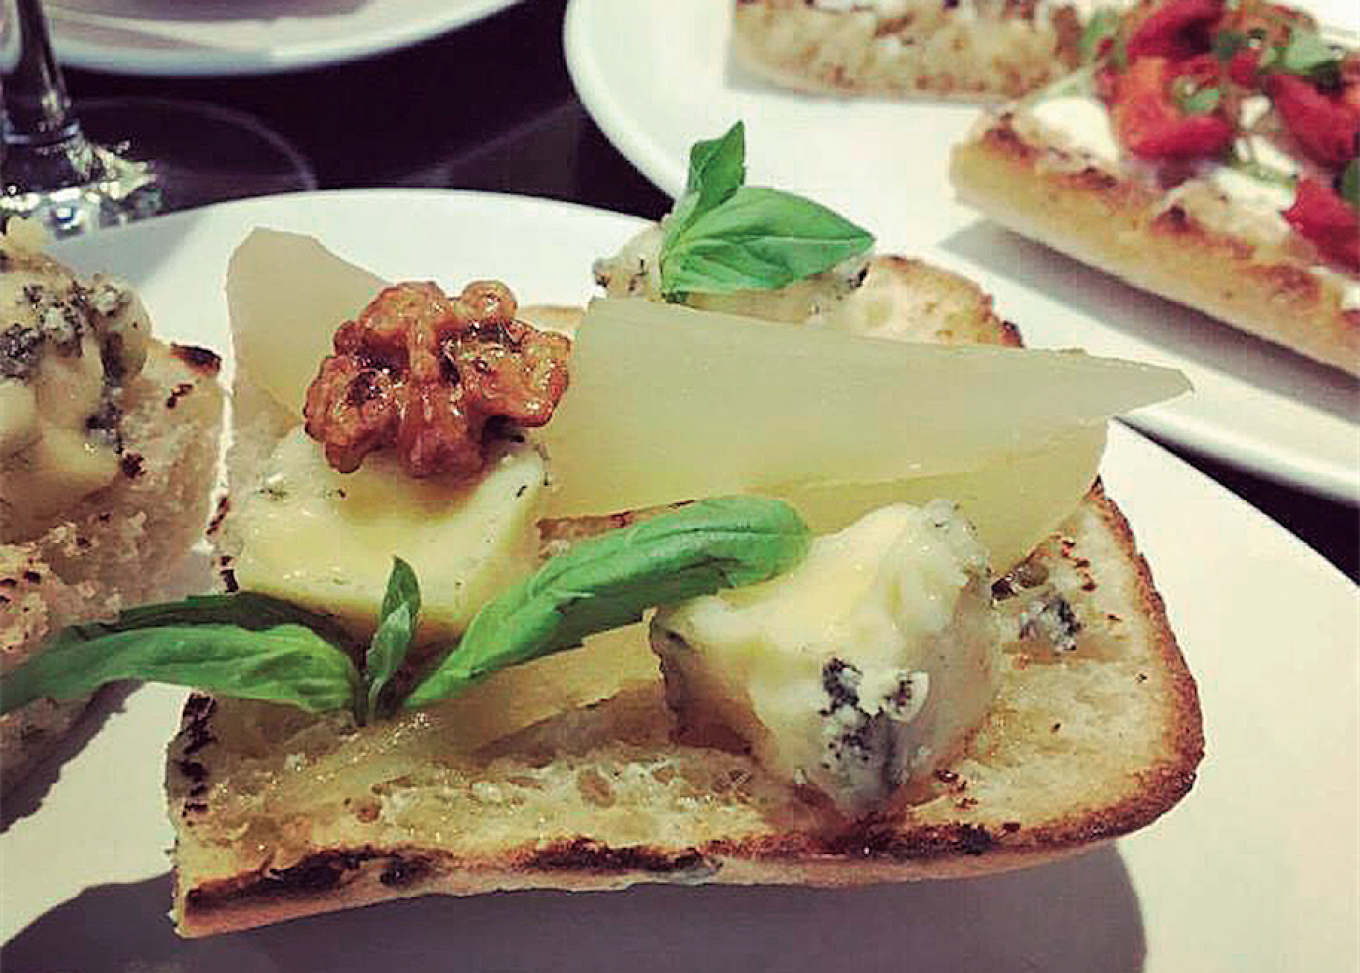 At Winetime, guests can try some of Russia's best domestically produced cheeses, including this blue cheese bruschetta. WINE TIME / FACEBOOK